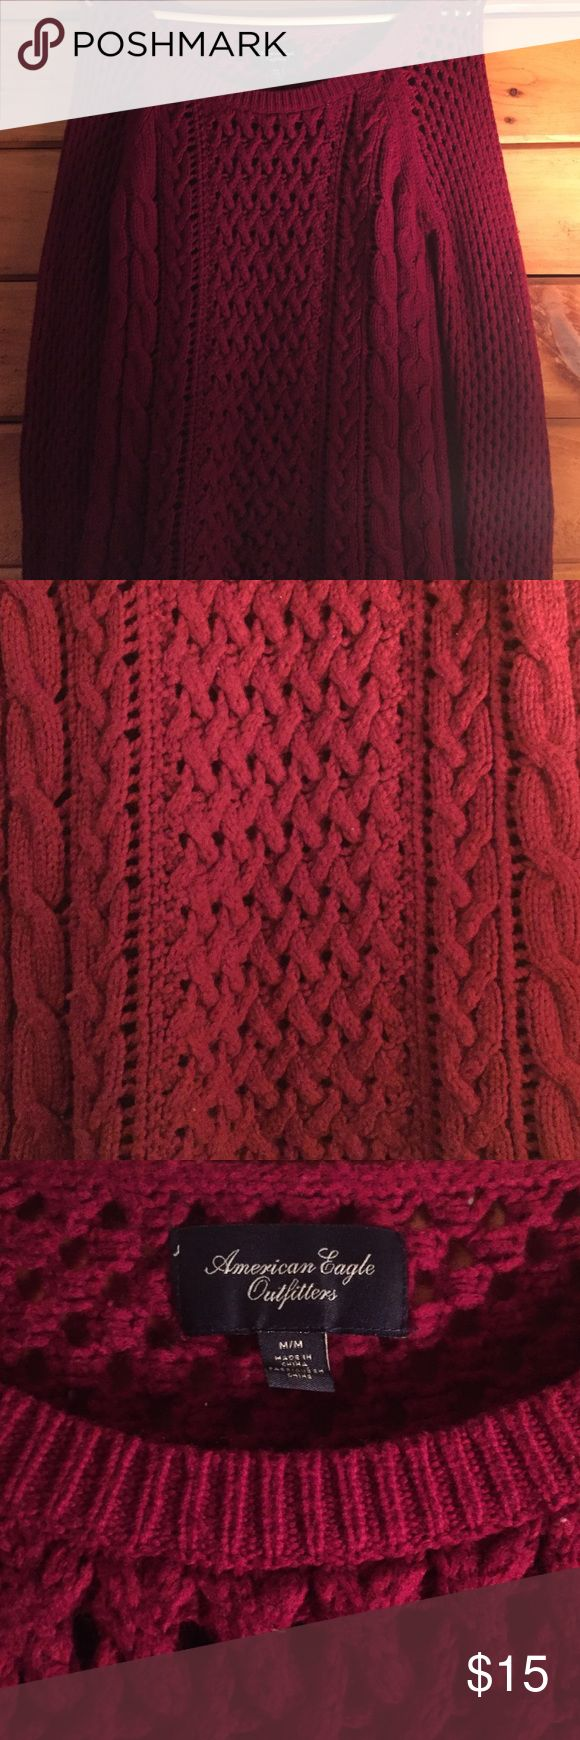 Knitted deep maroon sweater Knitted deep maroon sweater from American eagle. Super comfy and cute! Like new. Size medium American Eagle Outfitters Tops Sweatshirts & Hoodies